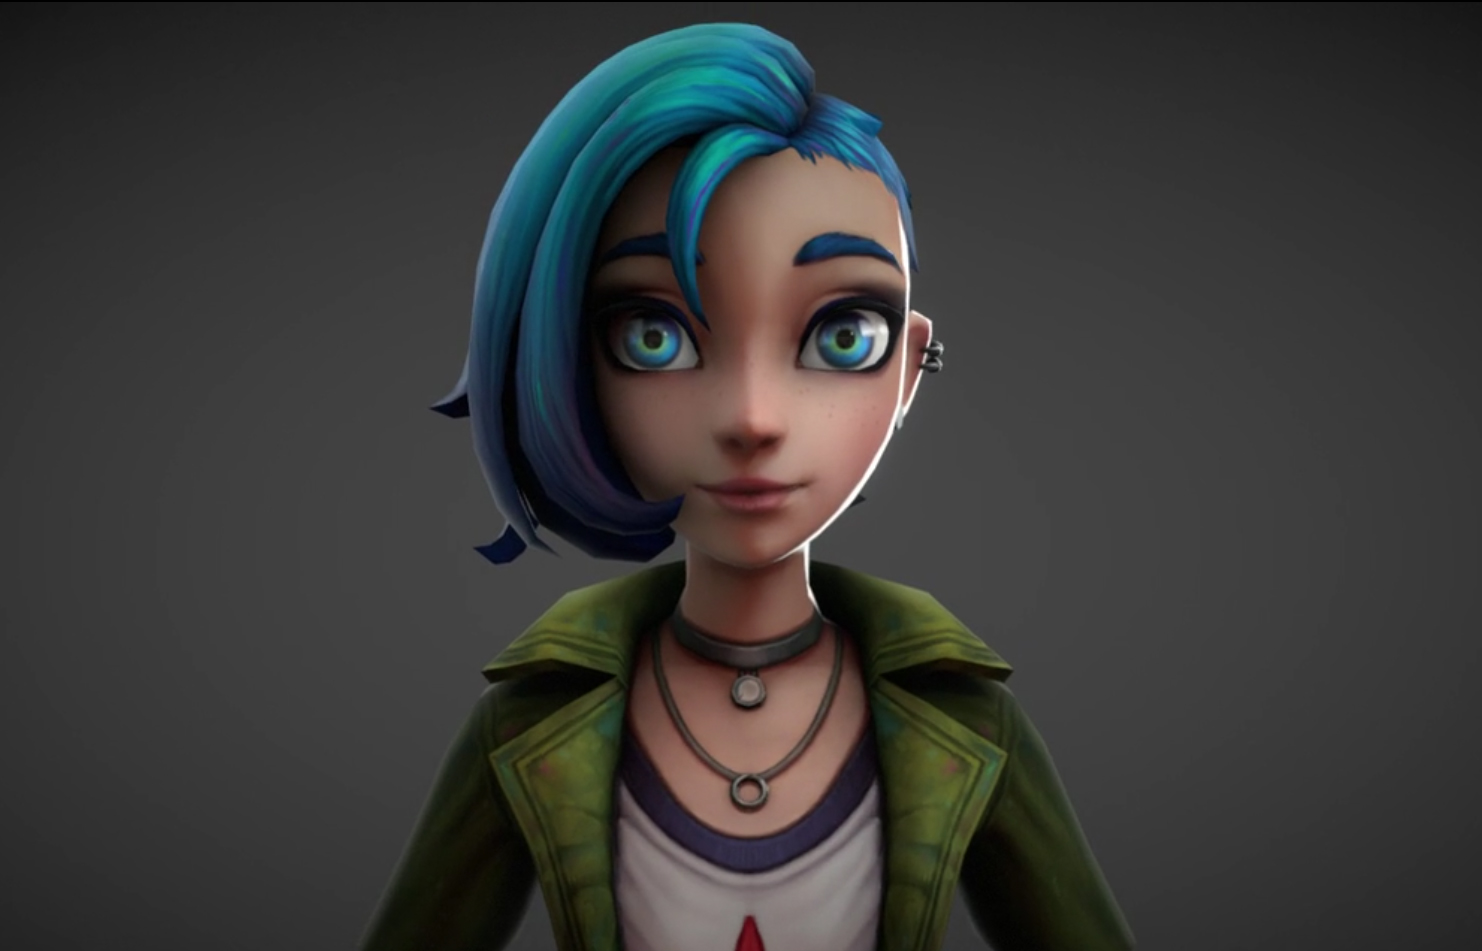 Stylized Character Rendering